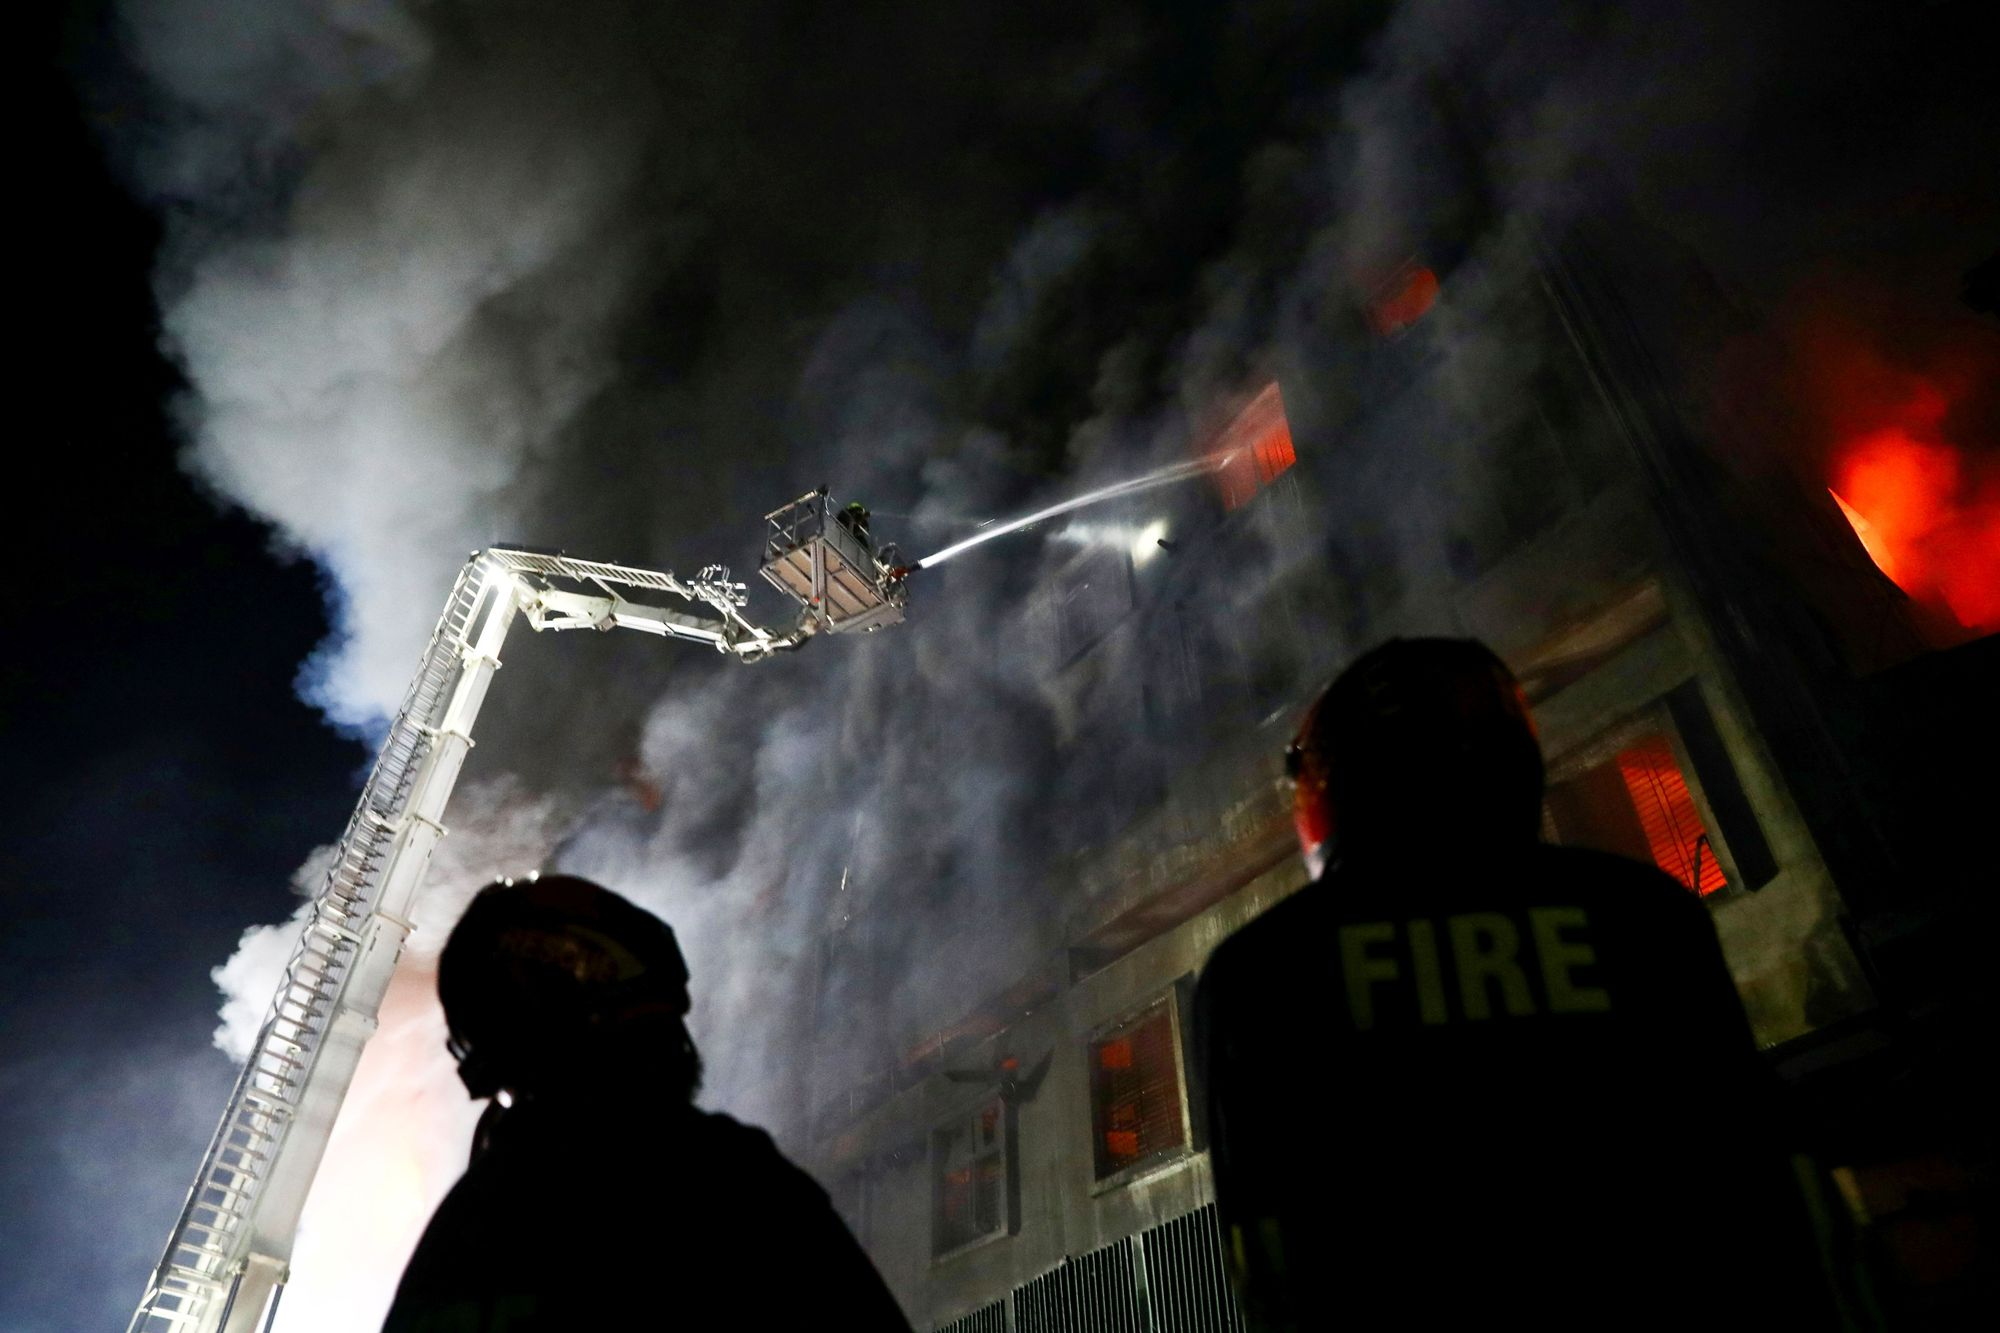 Fire at a factory na (117416824).jpg